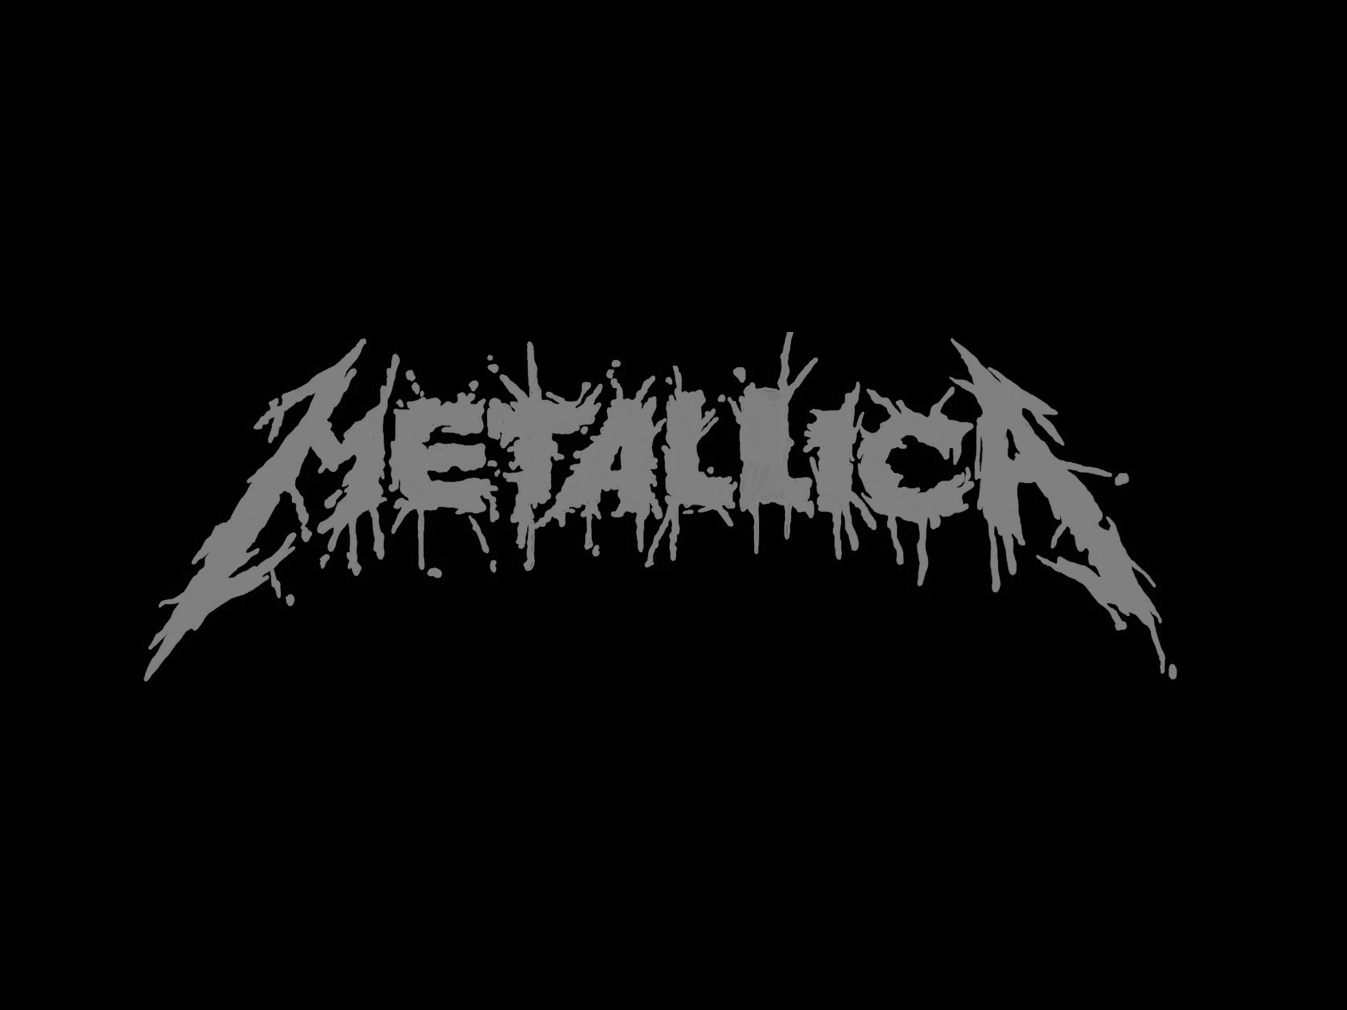 Metallica Logo (Spatter) by Larry Levine on Dribbble.